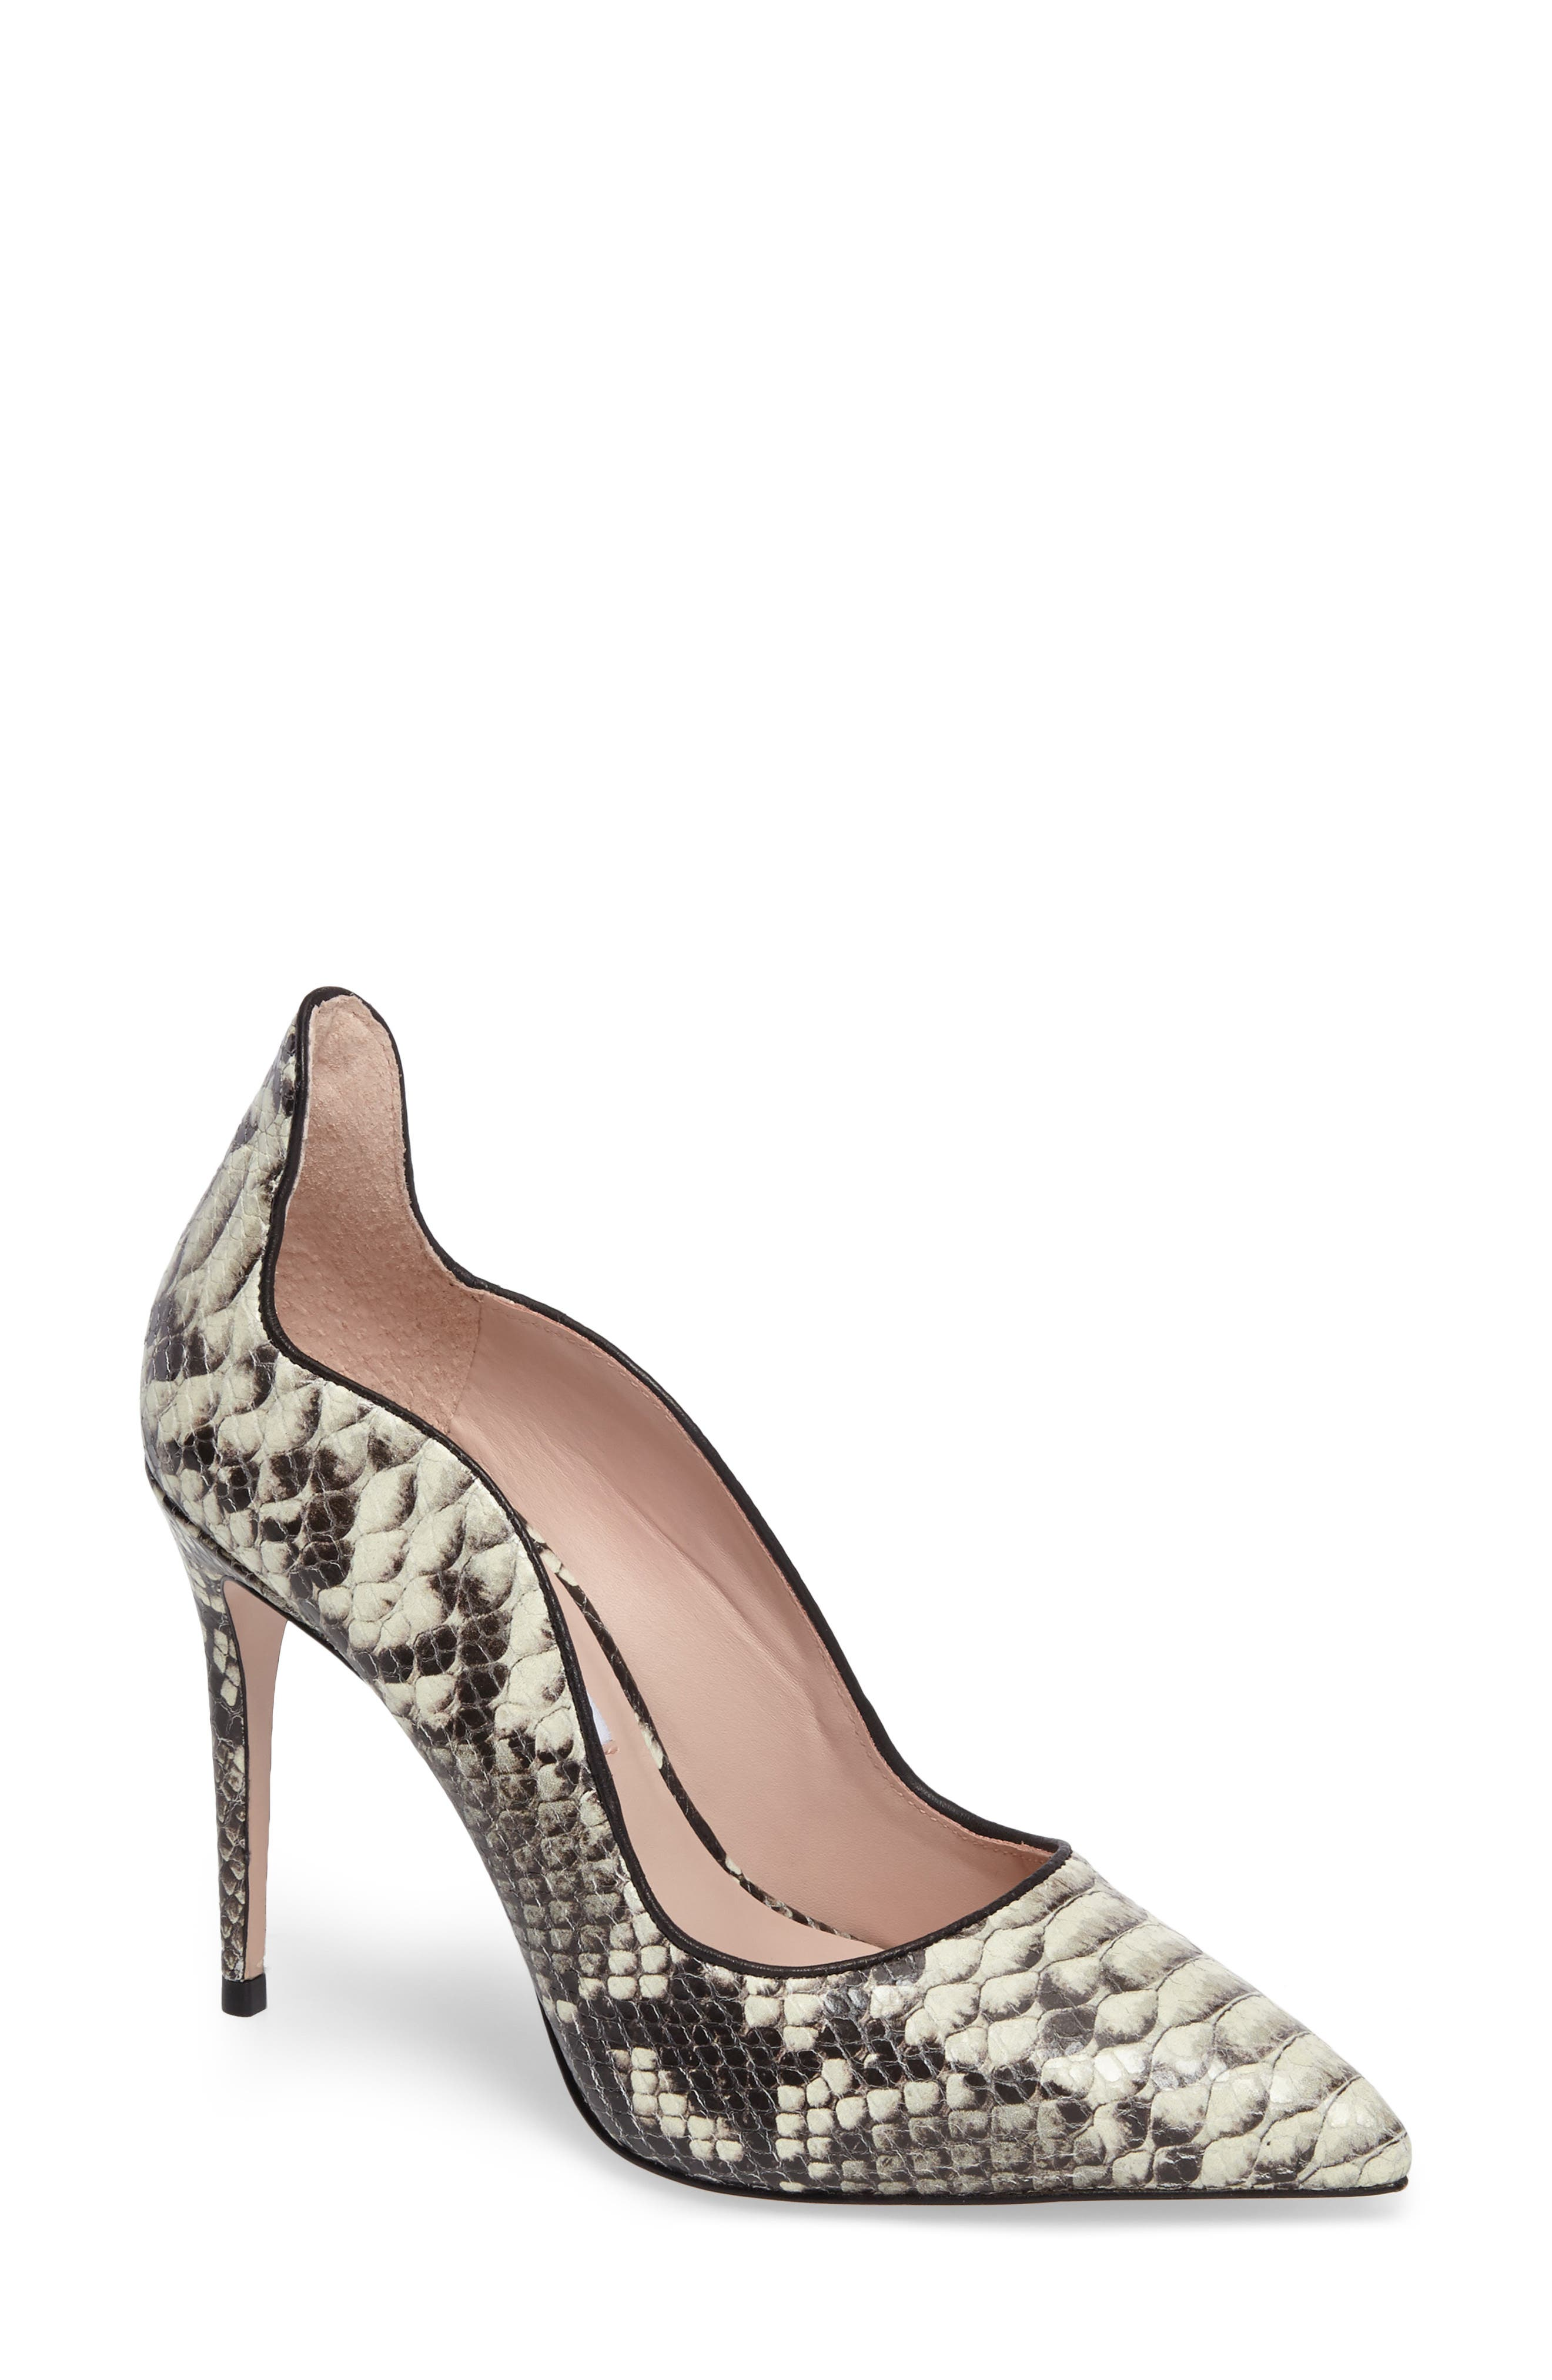 Anika II Curved Pump,                             Main thumbnail 1, color,                             Natural Embossed Leather